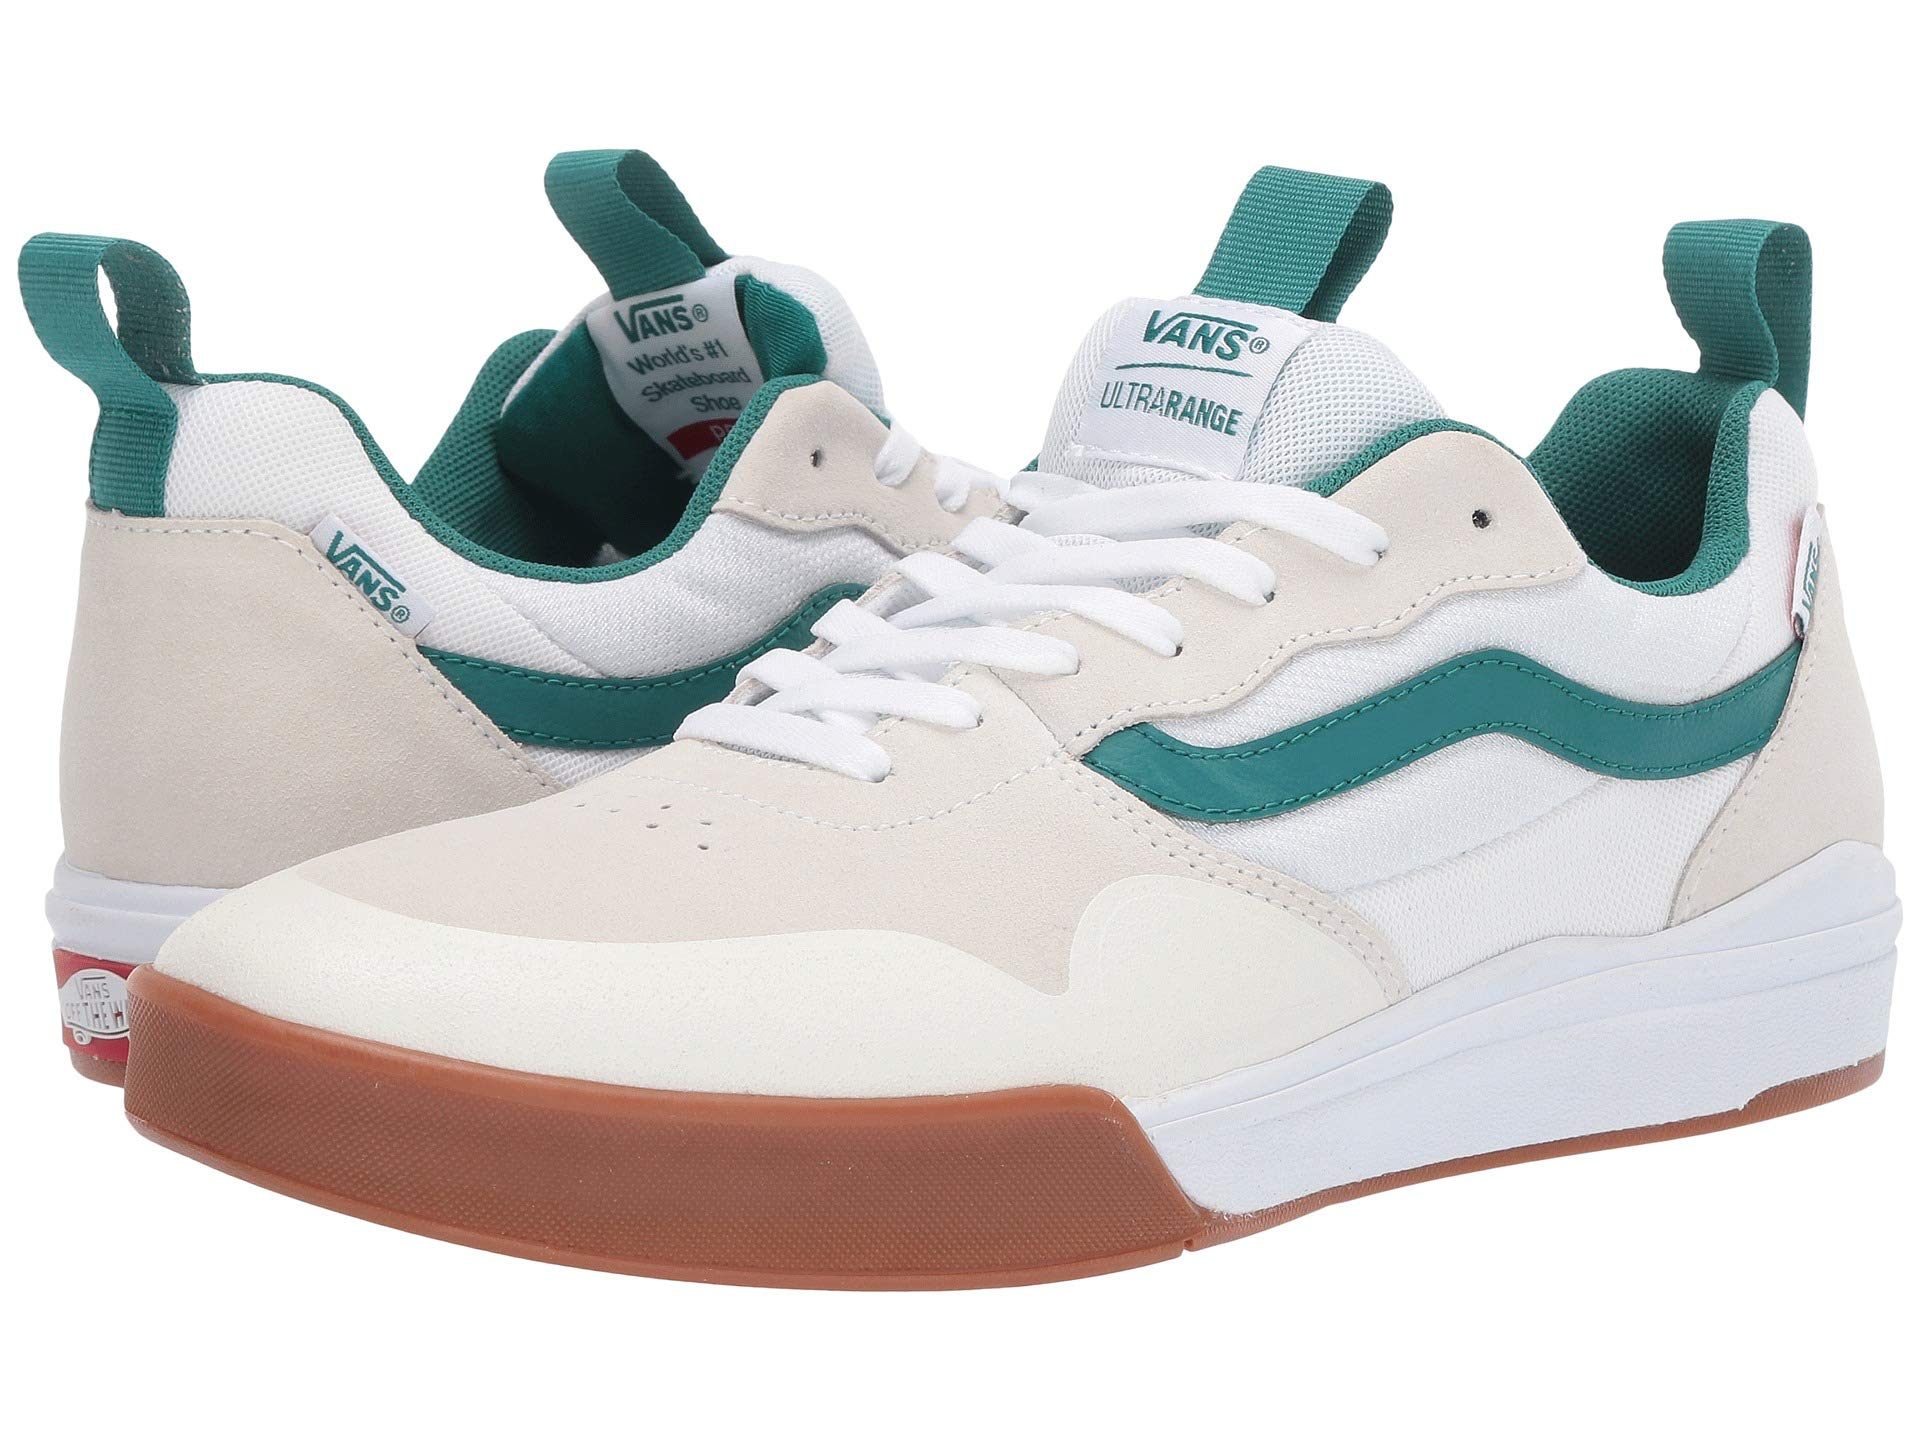 a77c19ae3b49 Green Sneakers Shoes Pro Vans amp  Marshmallow quetzal 2 Ultrarange™  Athletic qCH1wXS